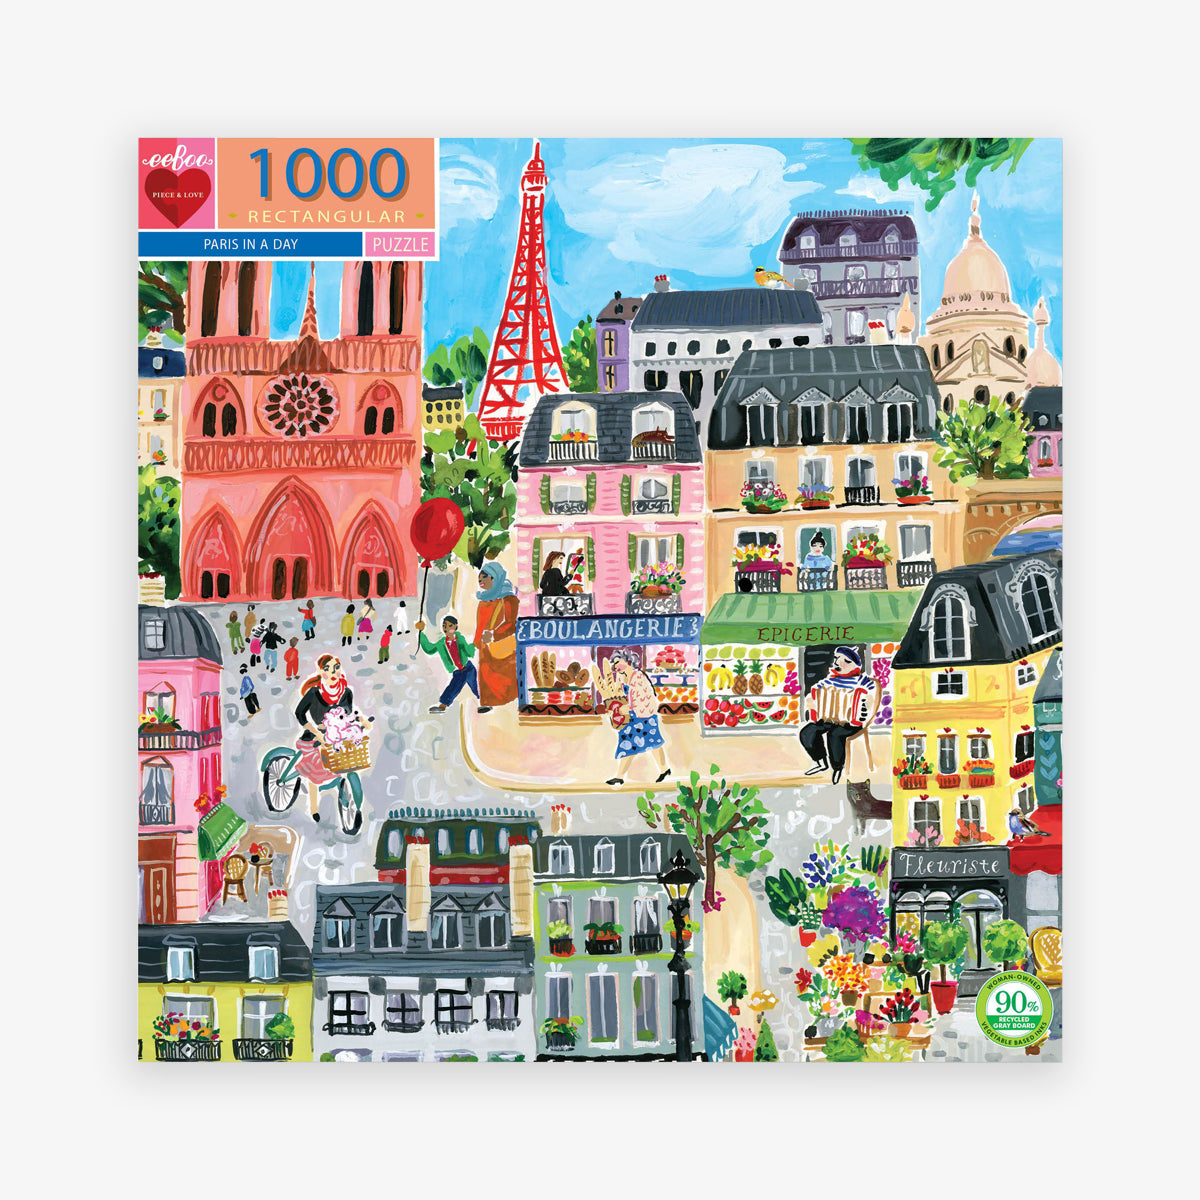 PUZZLE 'PARIS IN A DAY' // 1000 PCS